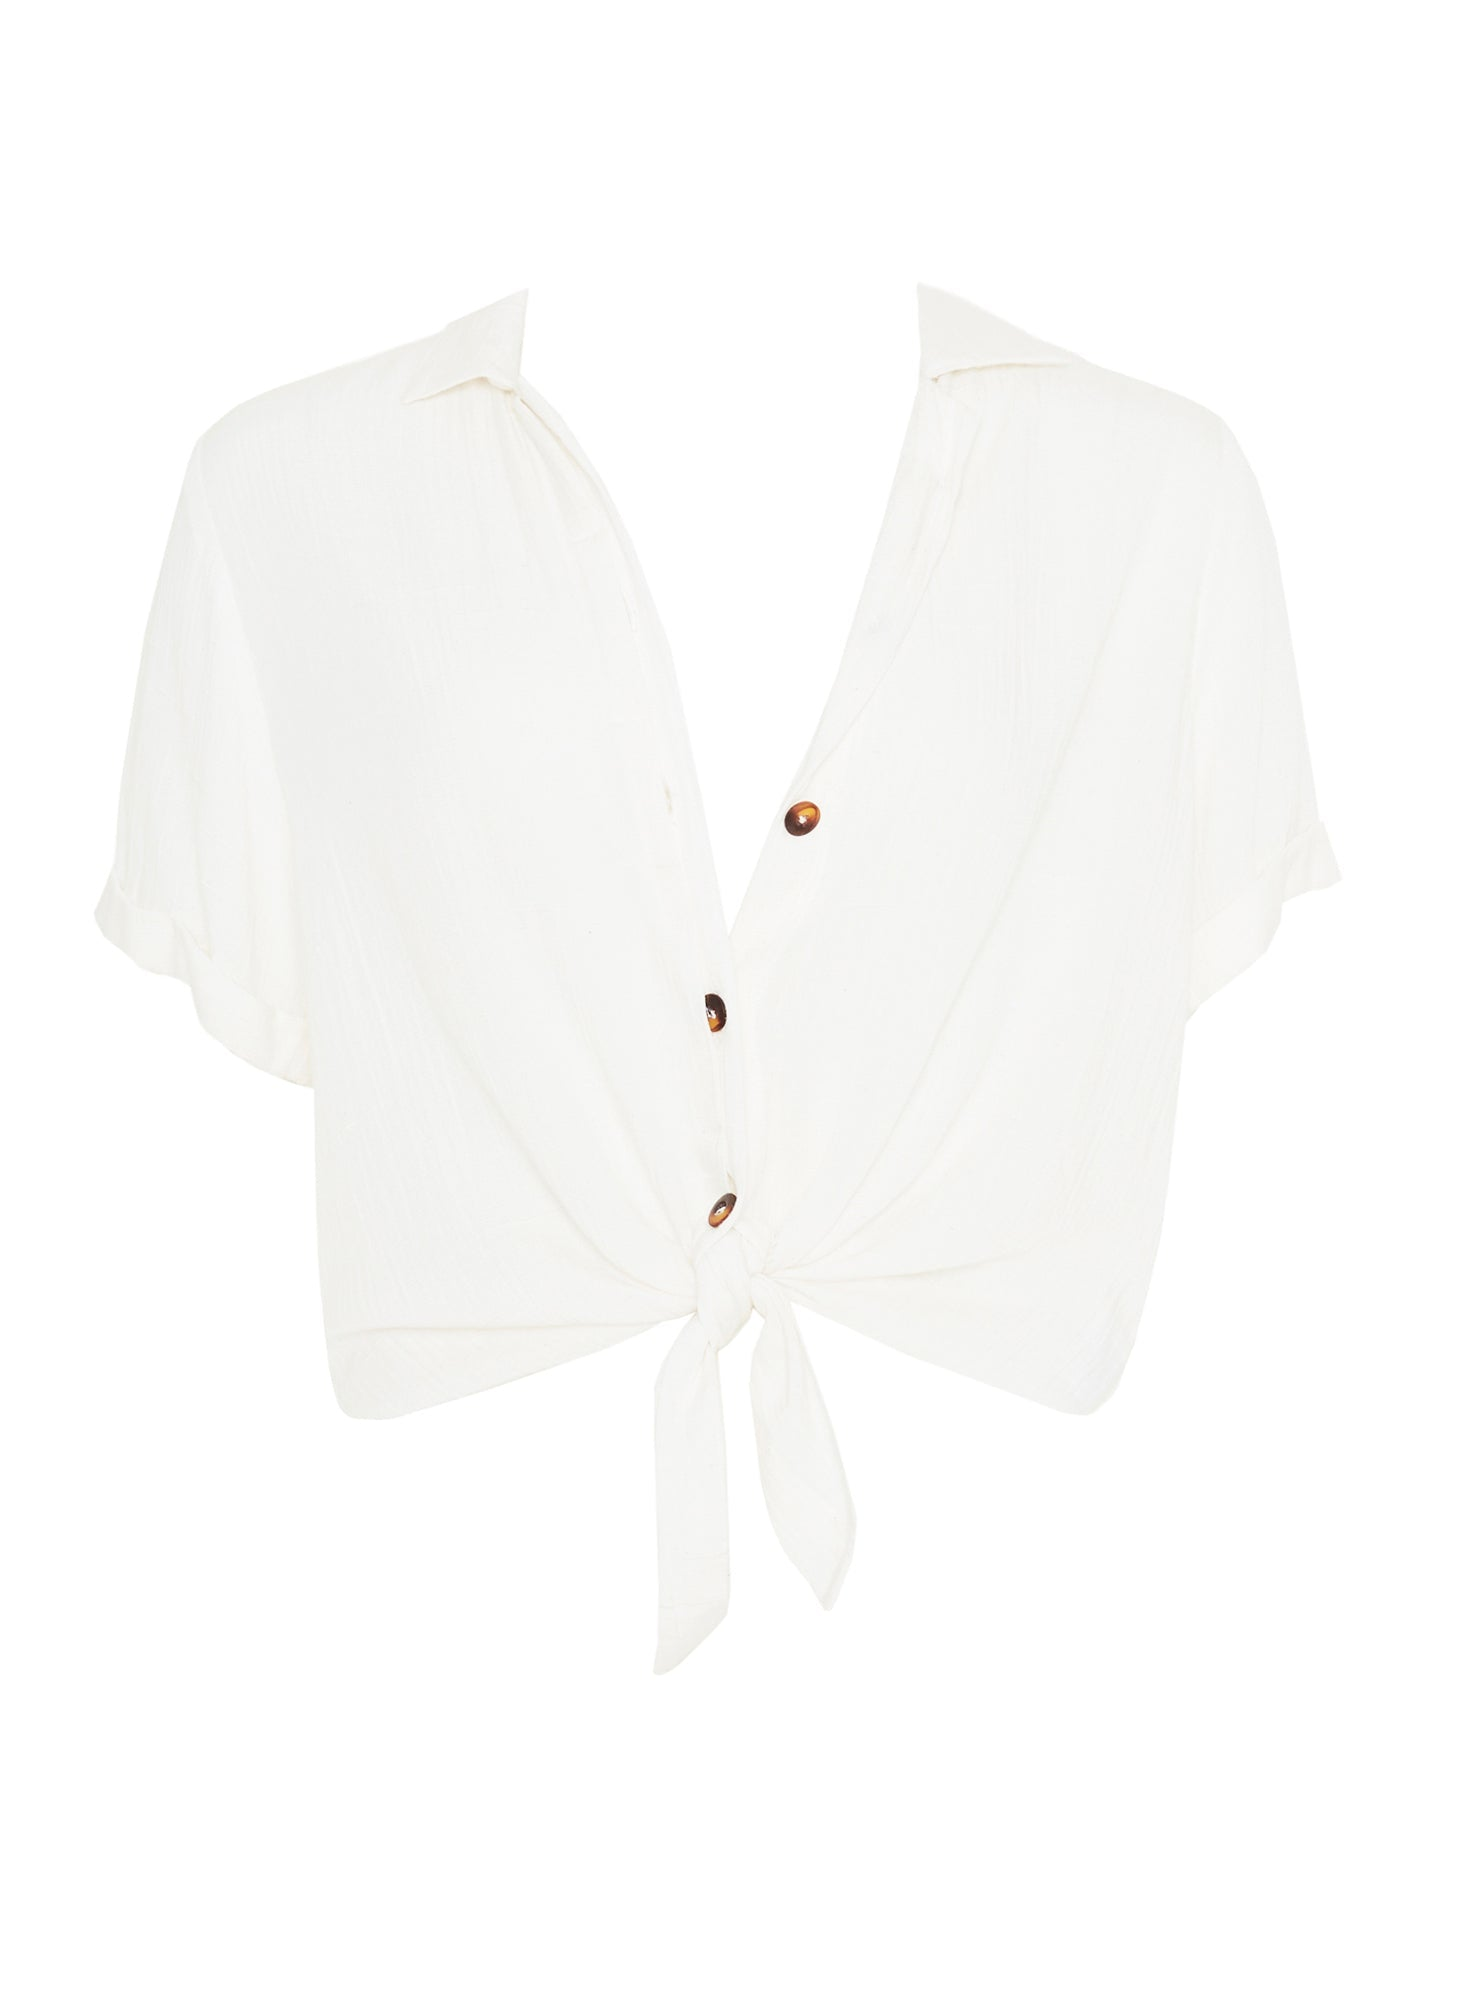 PLAIN OFF-WHITE TEXTURED - TOULIN SHIRT